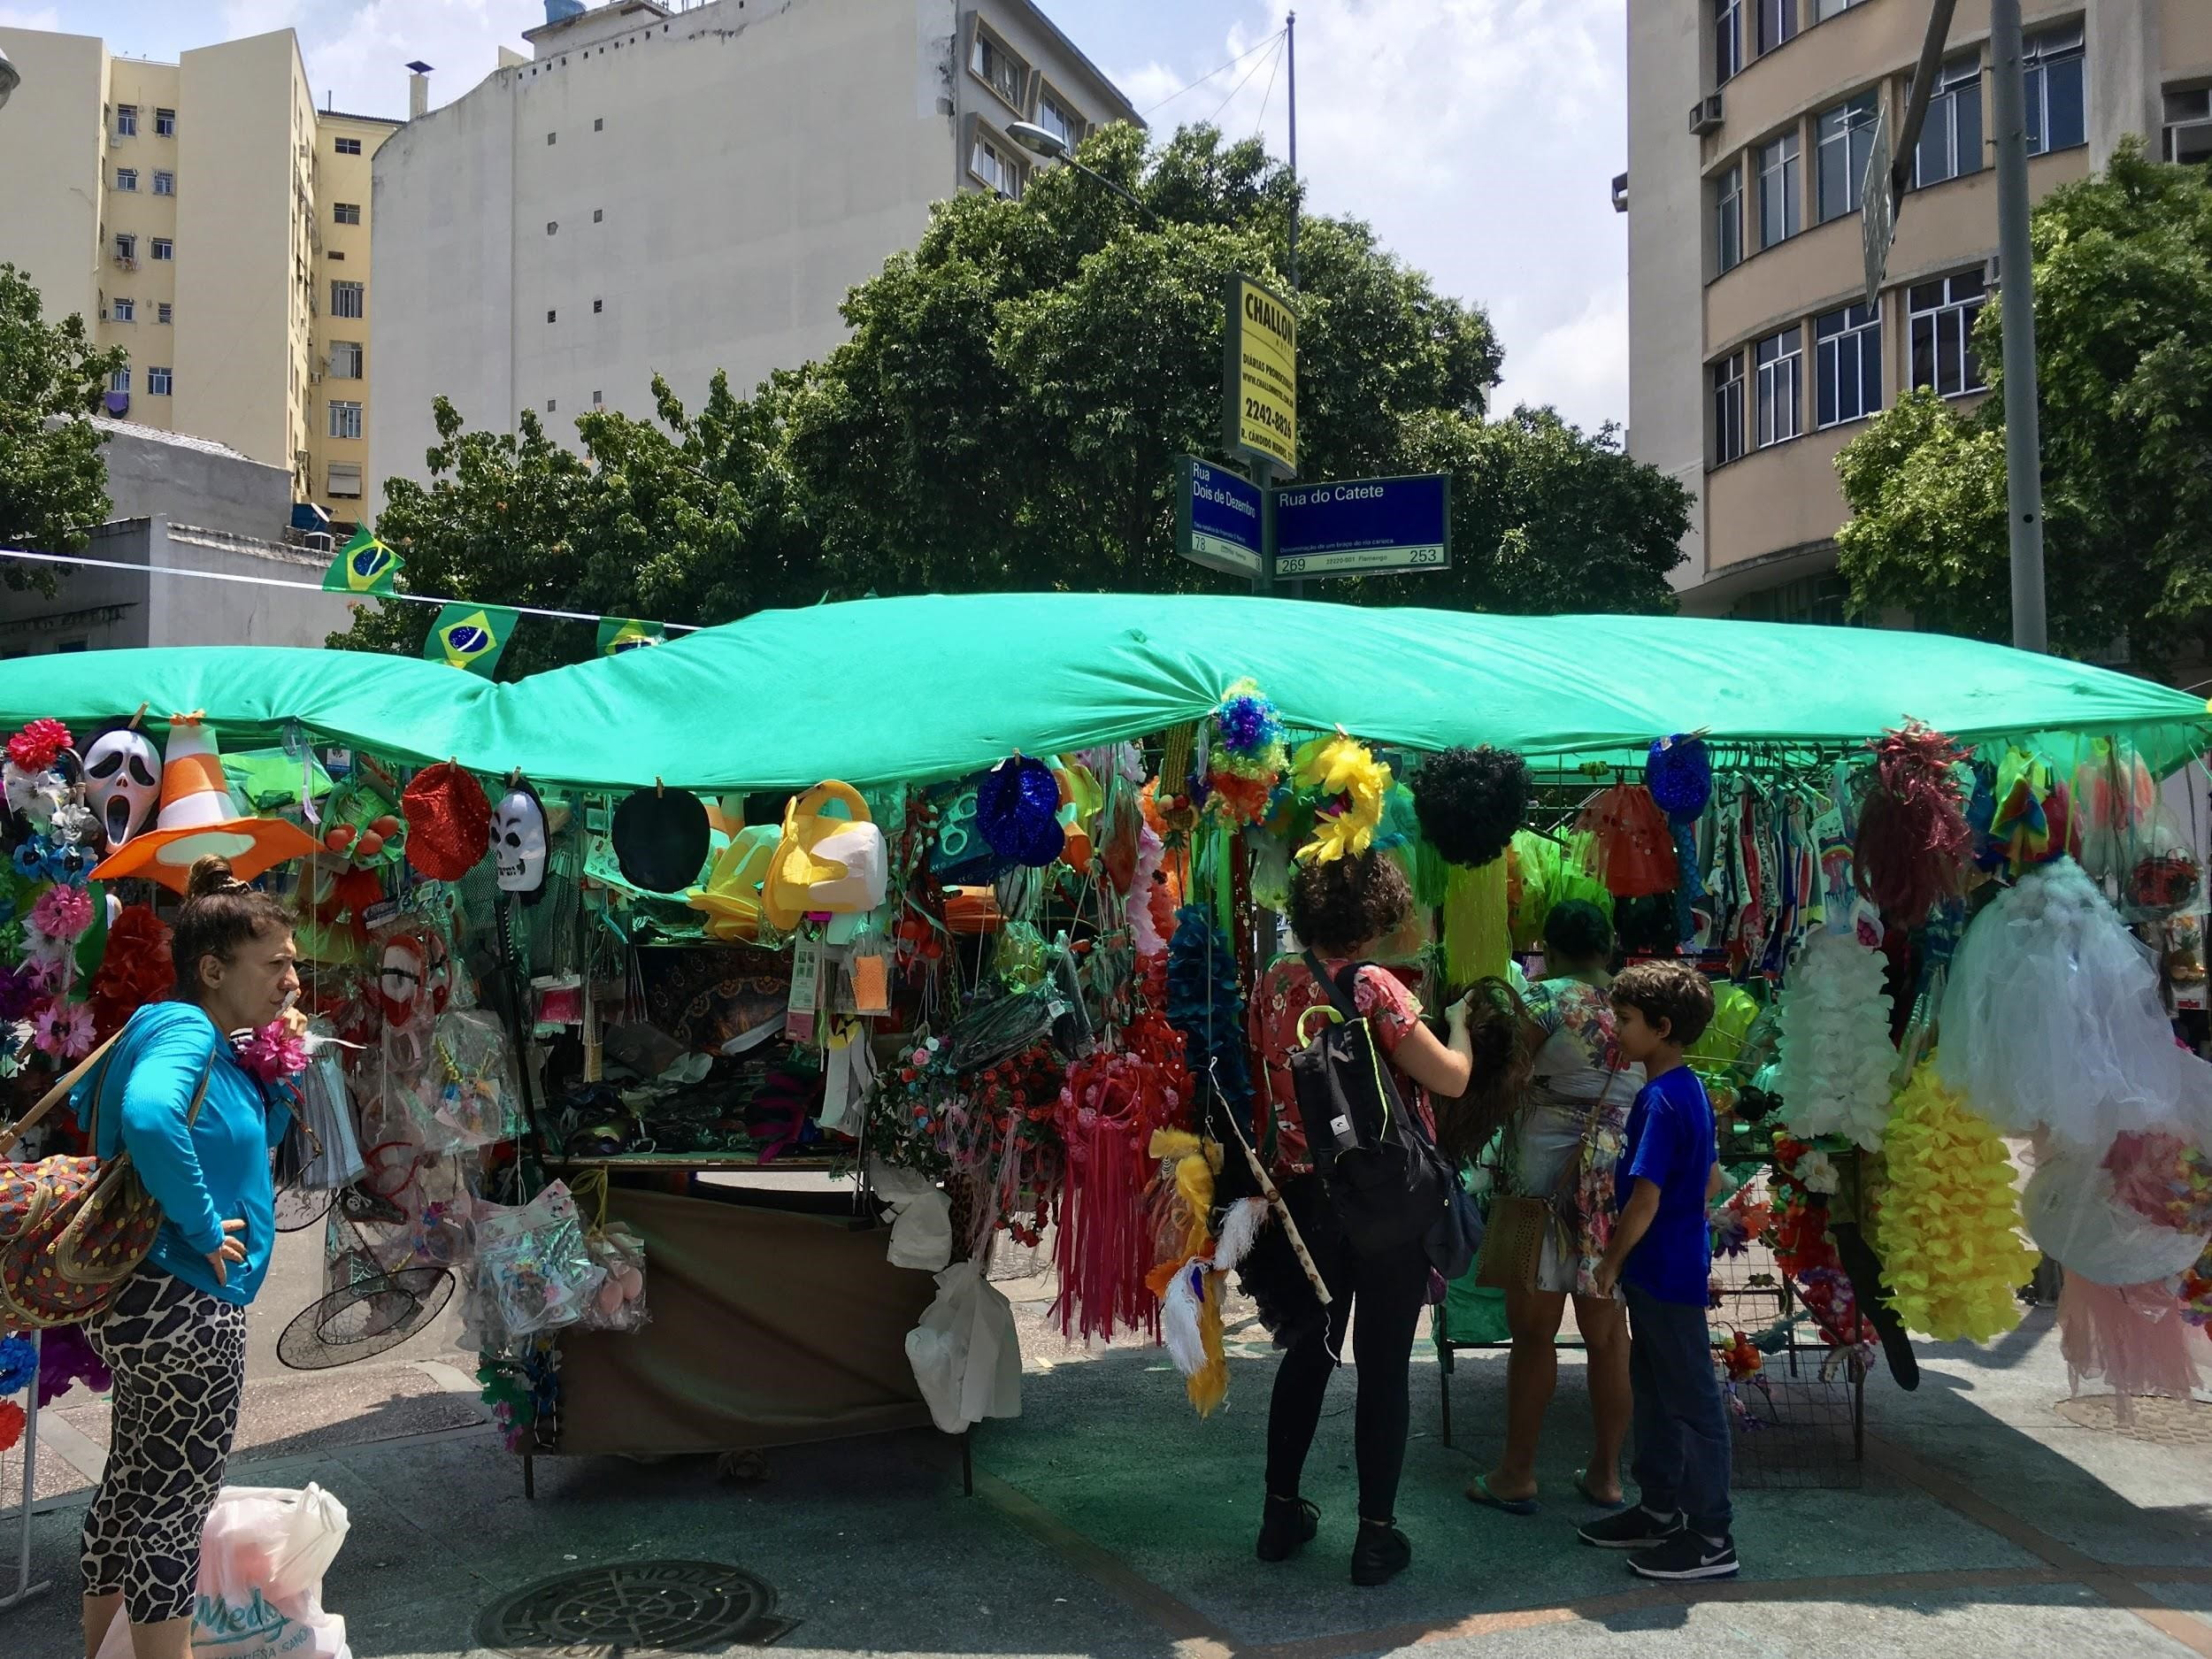 Street vendors selling costume items, such as colorful tutus, pirate hats, and bunny ears